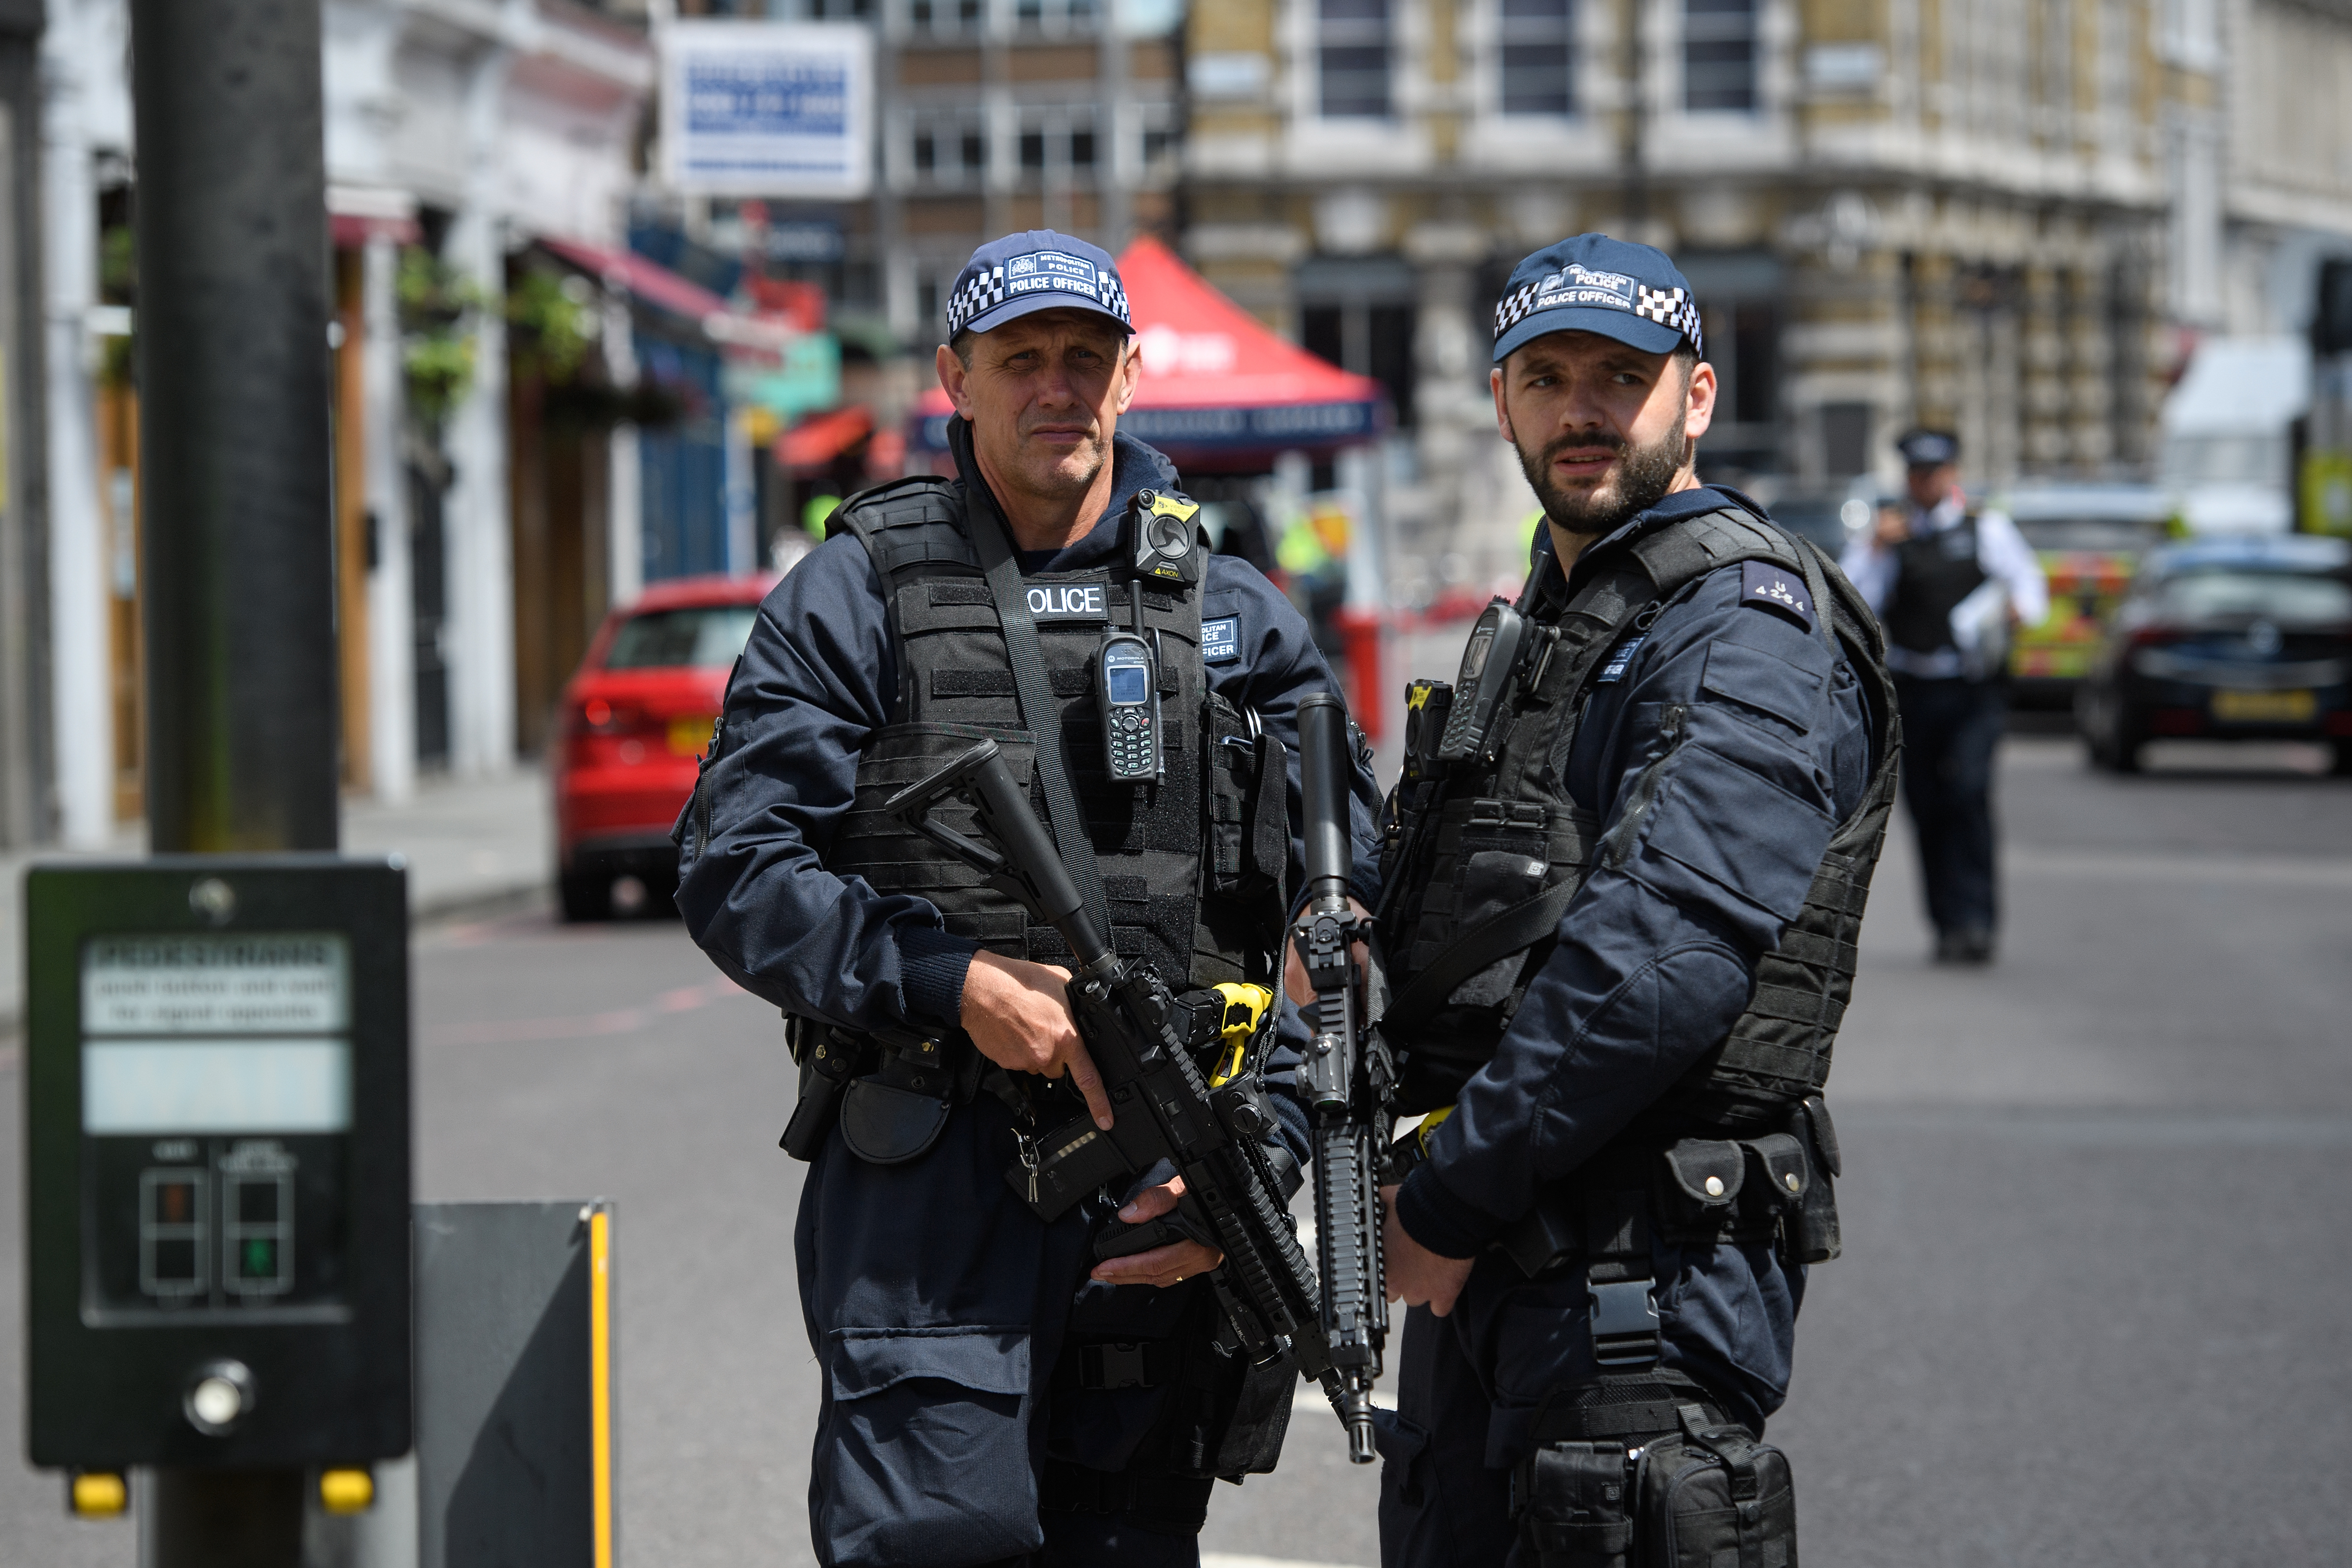 Londoners aren't freaking out about the terrorist attacks. Some politicians are.